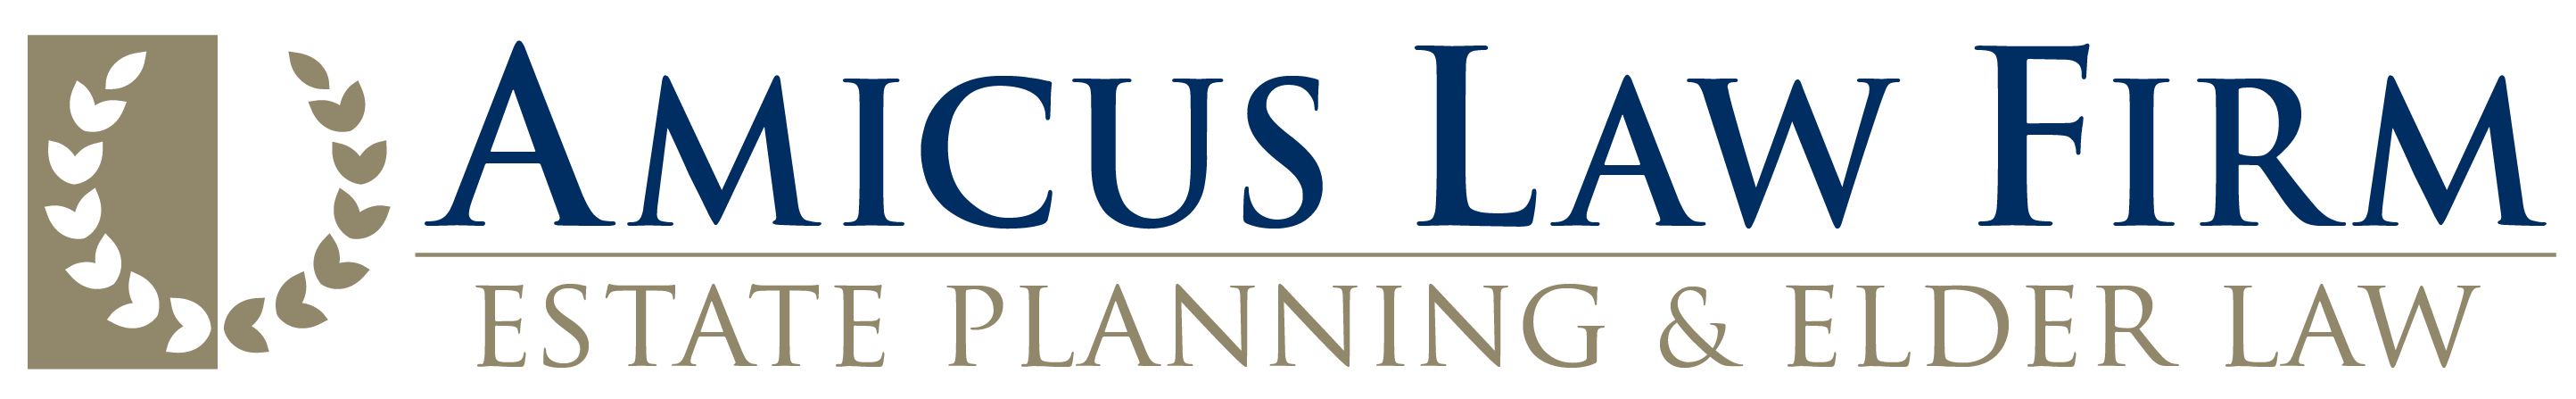 Amicus Law Firm Comprises An Experienced Estate Planning Attorney In Centerville Ut Representing Clients In Estate Planning Attorney Estate Planning Law Firm